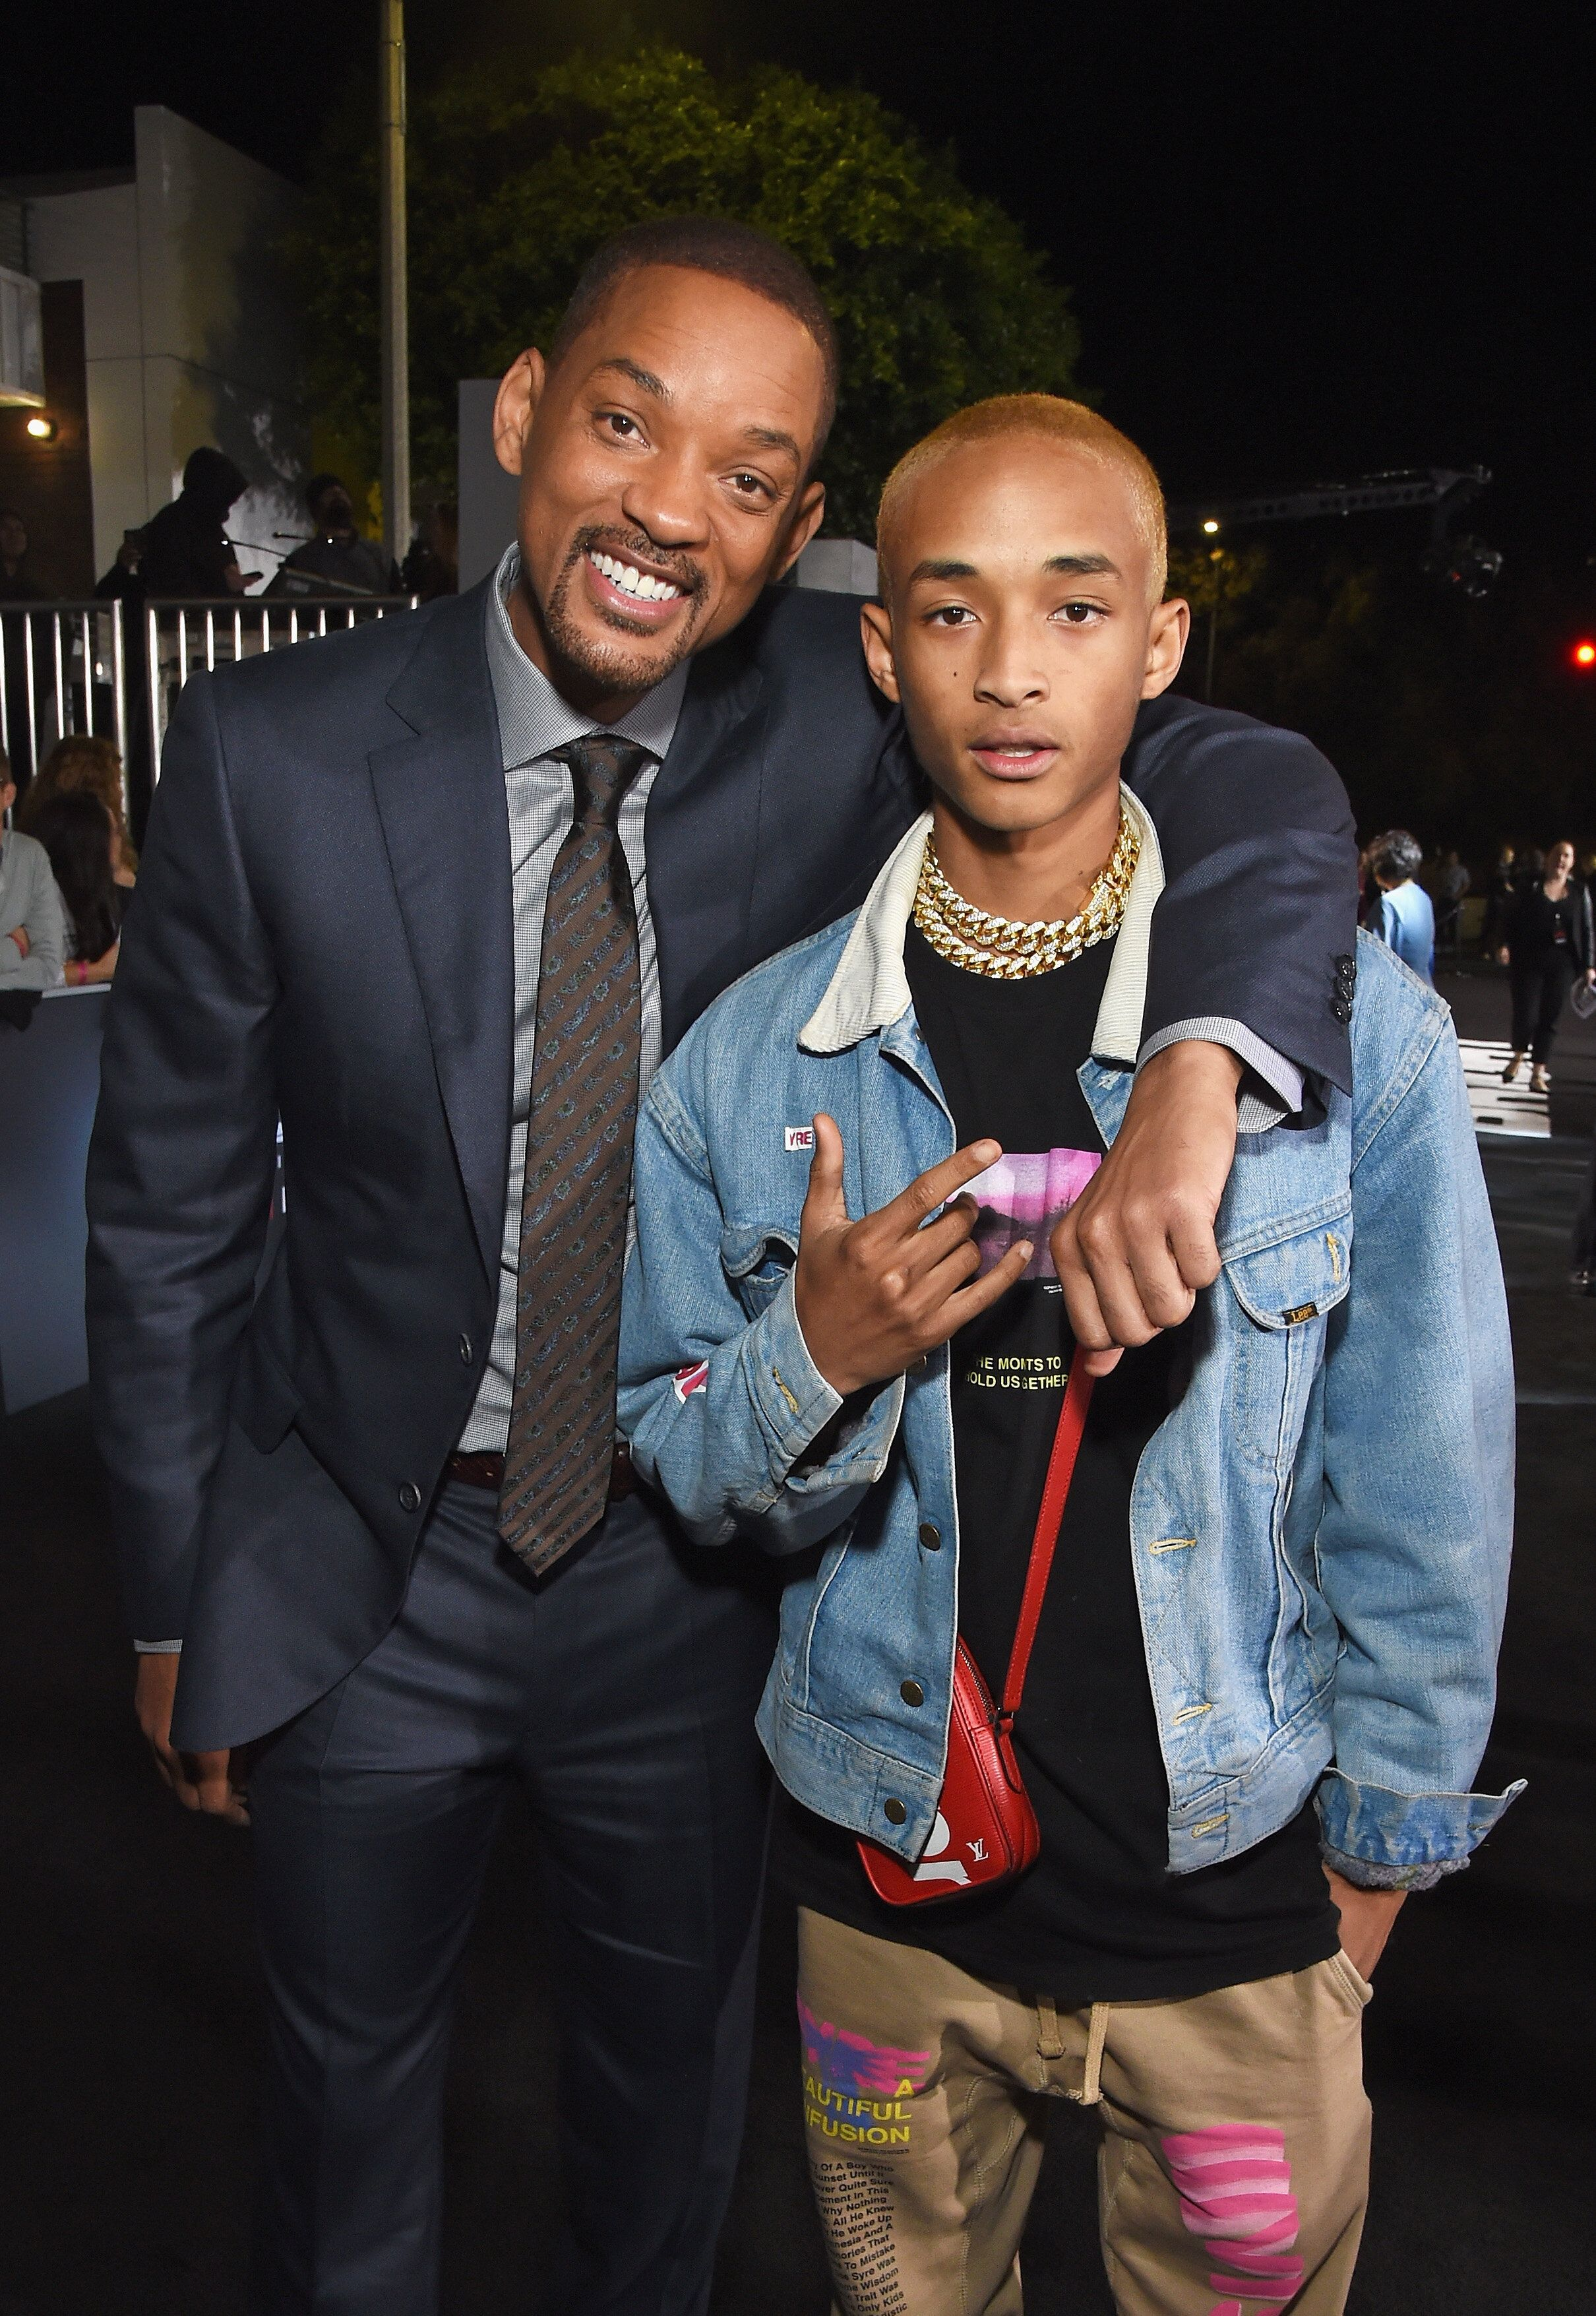 LOS ANGELES, CA - DECEMBER 13:  Will Smith (L) and Jaden Smith attend the LA Premiere of Netflix Films 'BRIGHT' on December 13, 2017 in Los Angeles, California.  (Photo by Michael Kovac/Getty Images for Netflix)